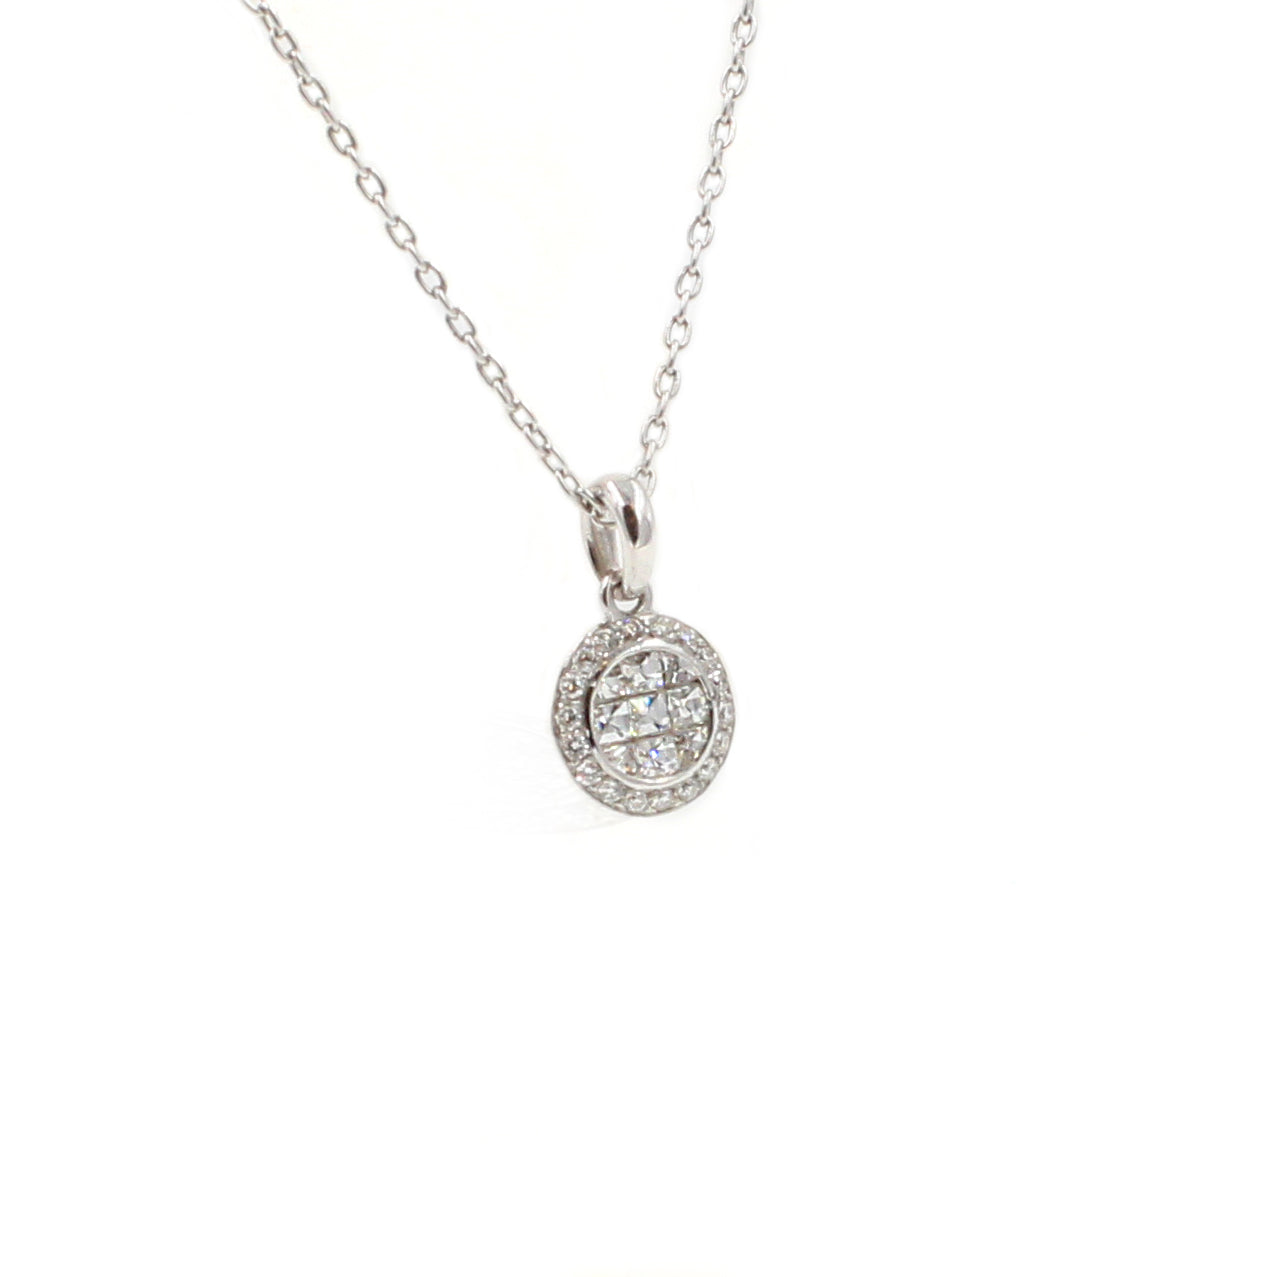 Fine Jewelry Collection: Small Diamond Pendant Necklace